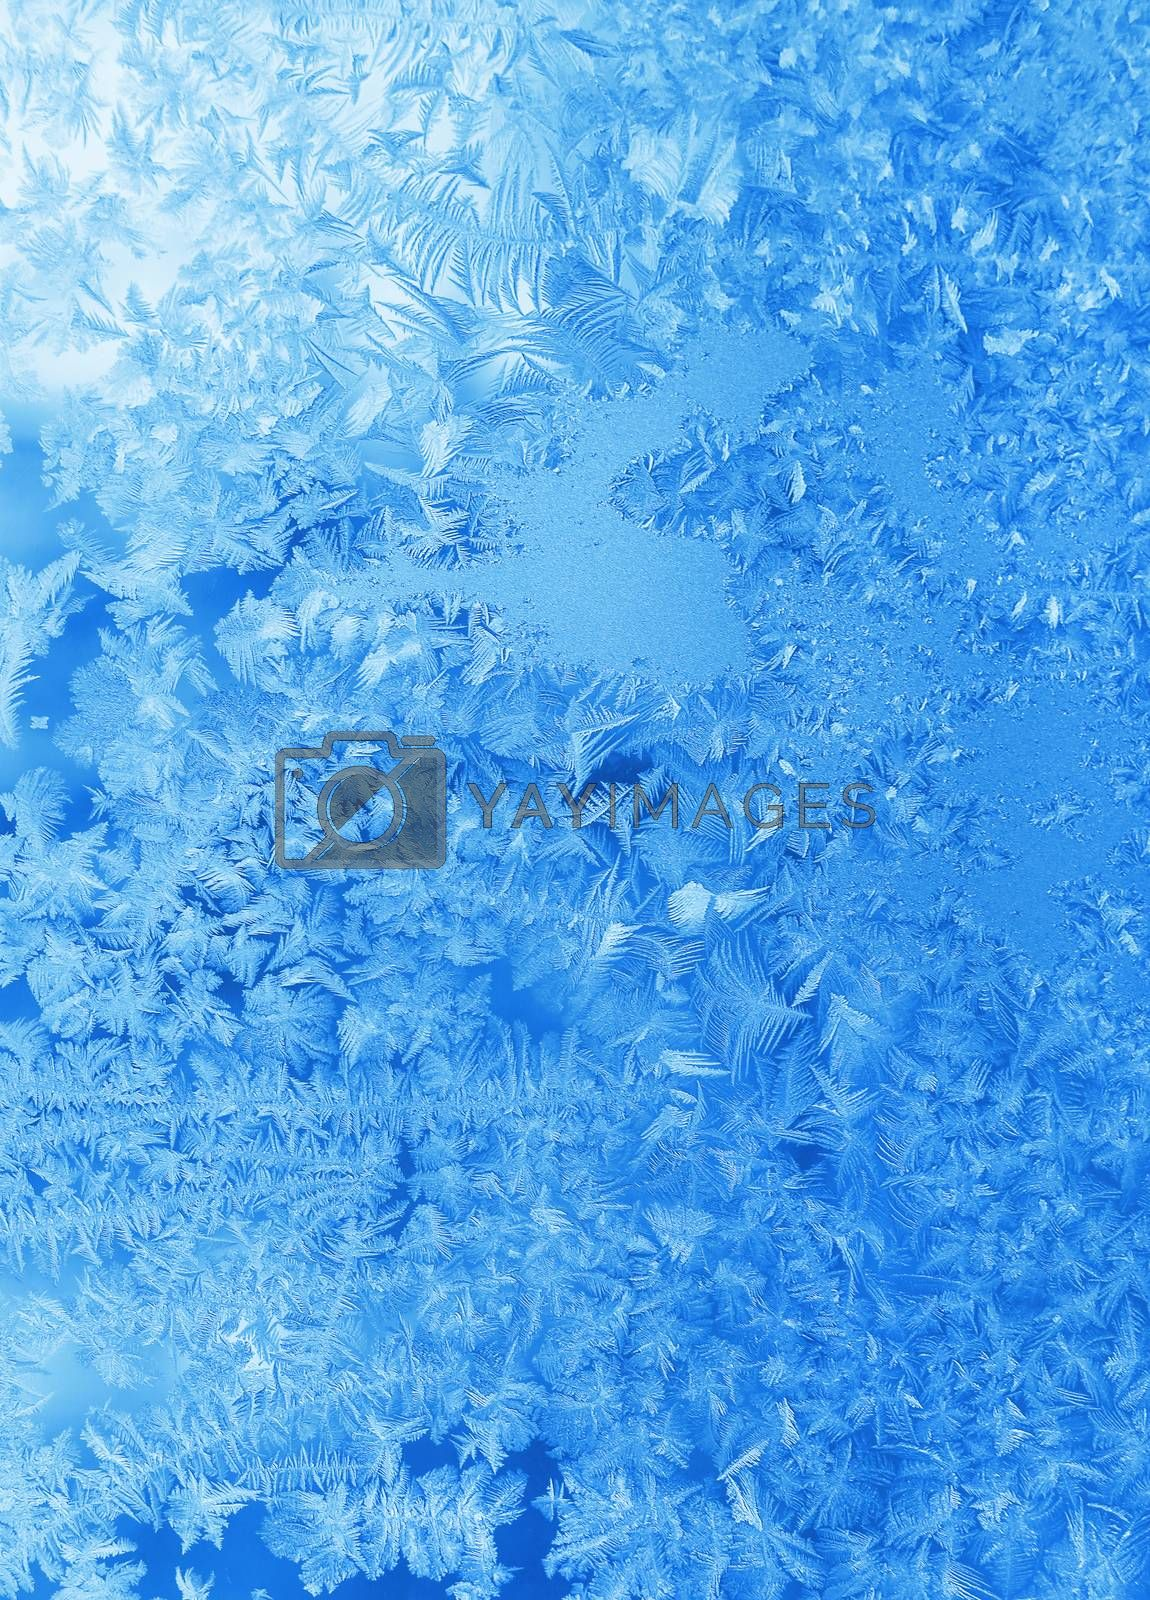 Texture of beautiful natural ice pattern on winter glass